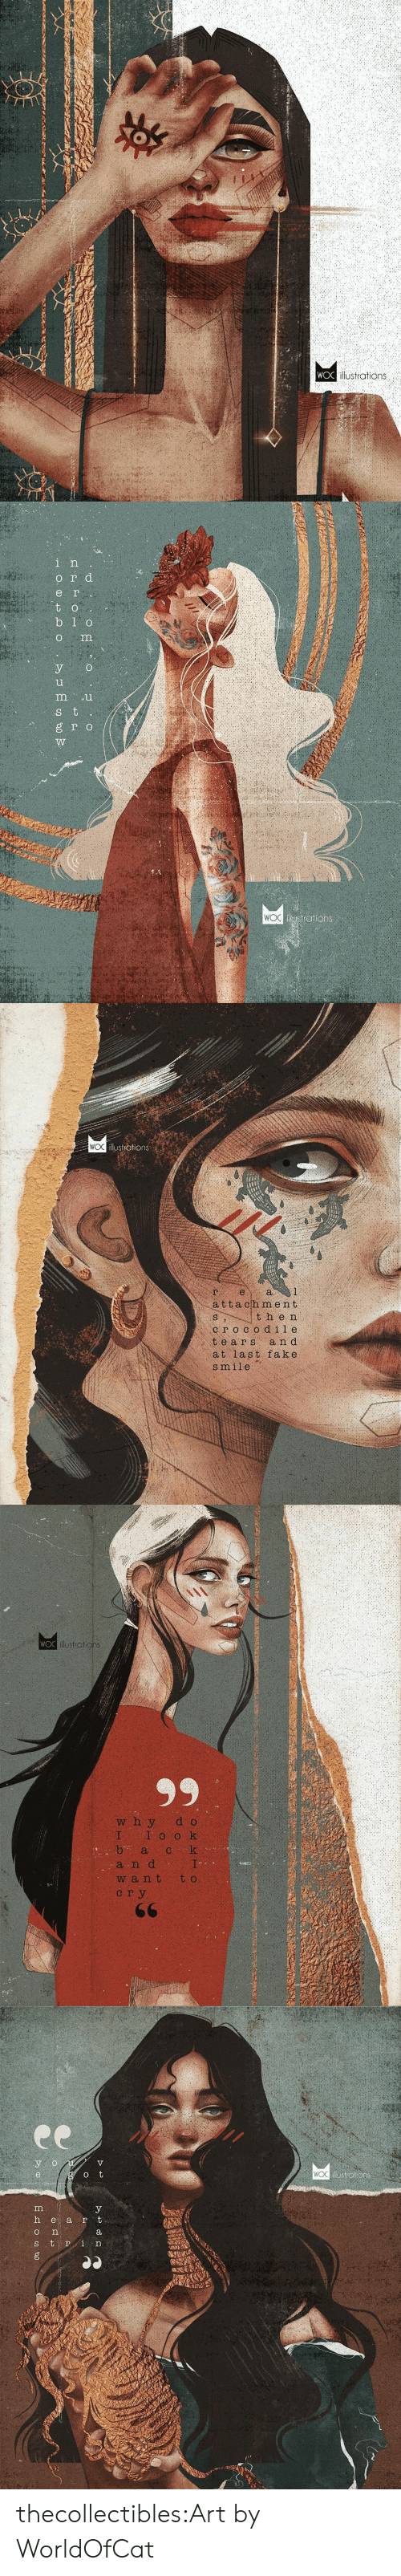 Fake, Instagram, and Tumblr: WOC illustrations   ег.  t o  b 1 o  о  о  8 го  strations  WOC  ИИАНА  Ее  . ВЕЯ 0о  - Н О Ф   WO illustiations  a  е.  attach ment  then  сгосоd ile  tears  a n d  at last fake  smile   WOO illostrations  99  w h y  I  b а  d o  1ооk  k  I.  t o  С  a n d  W a nt  сгу  66  ДИЗ  у к  мно   ее  illustrations  e  h е а r t  S tri thecollectibles:Art by  WorldOfCat